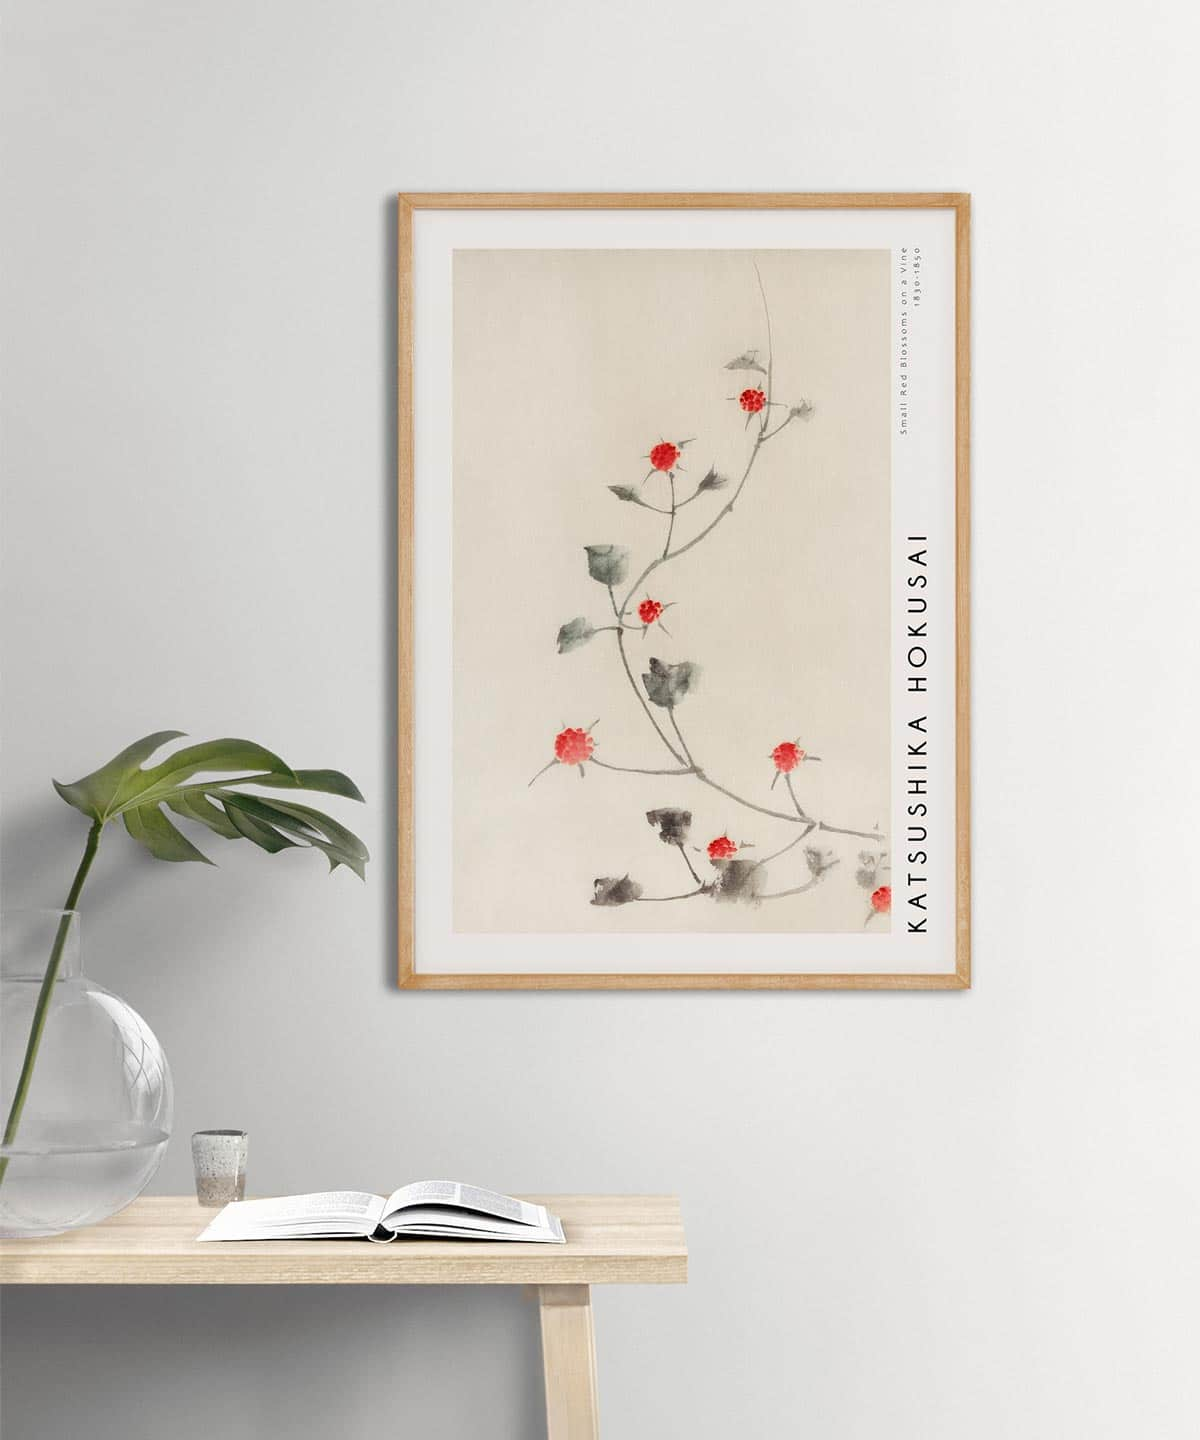 Hokusai-Small-Red-Blossoms-on-a-Vine-Poster-Wooden-Framed-Duwart